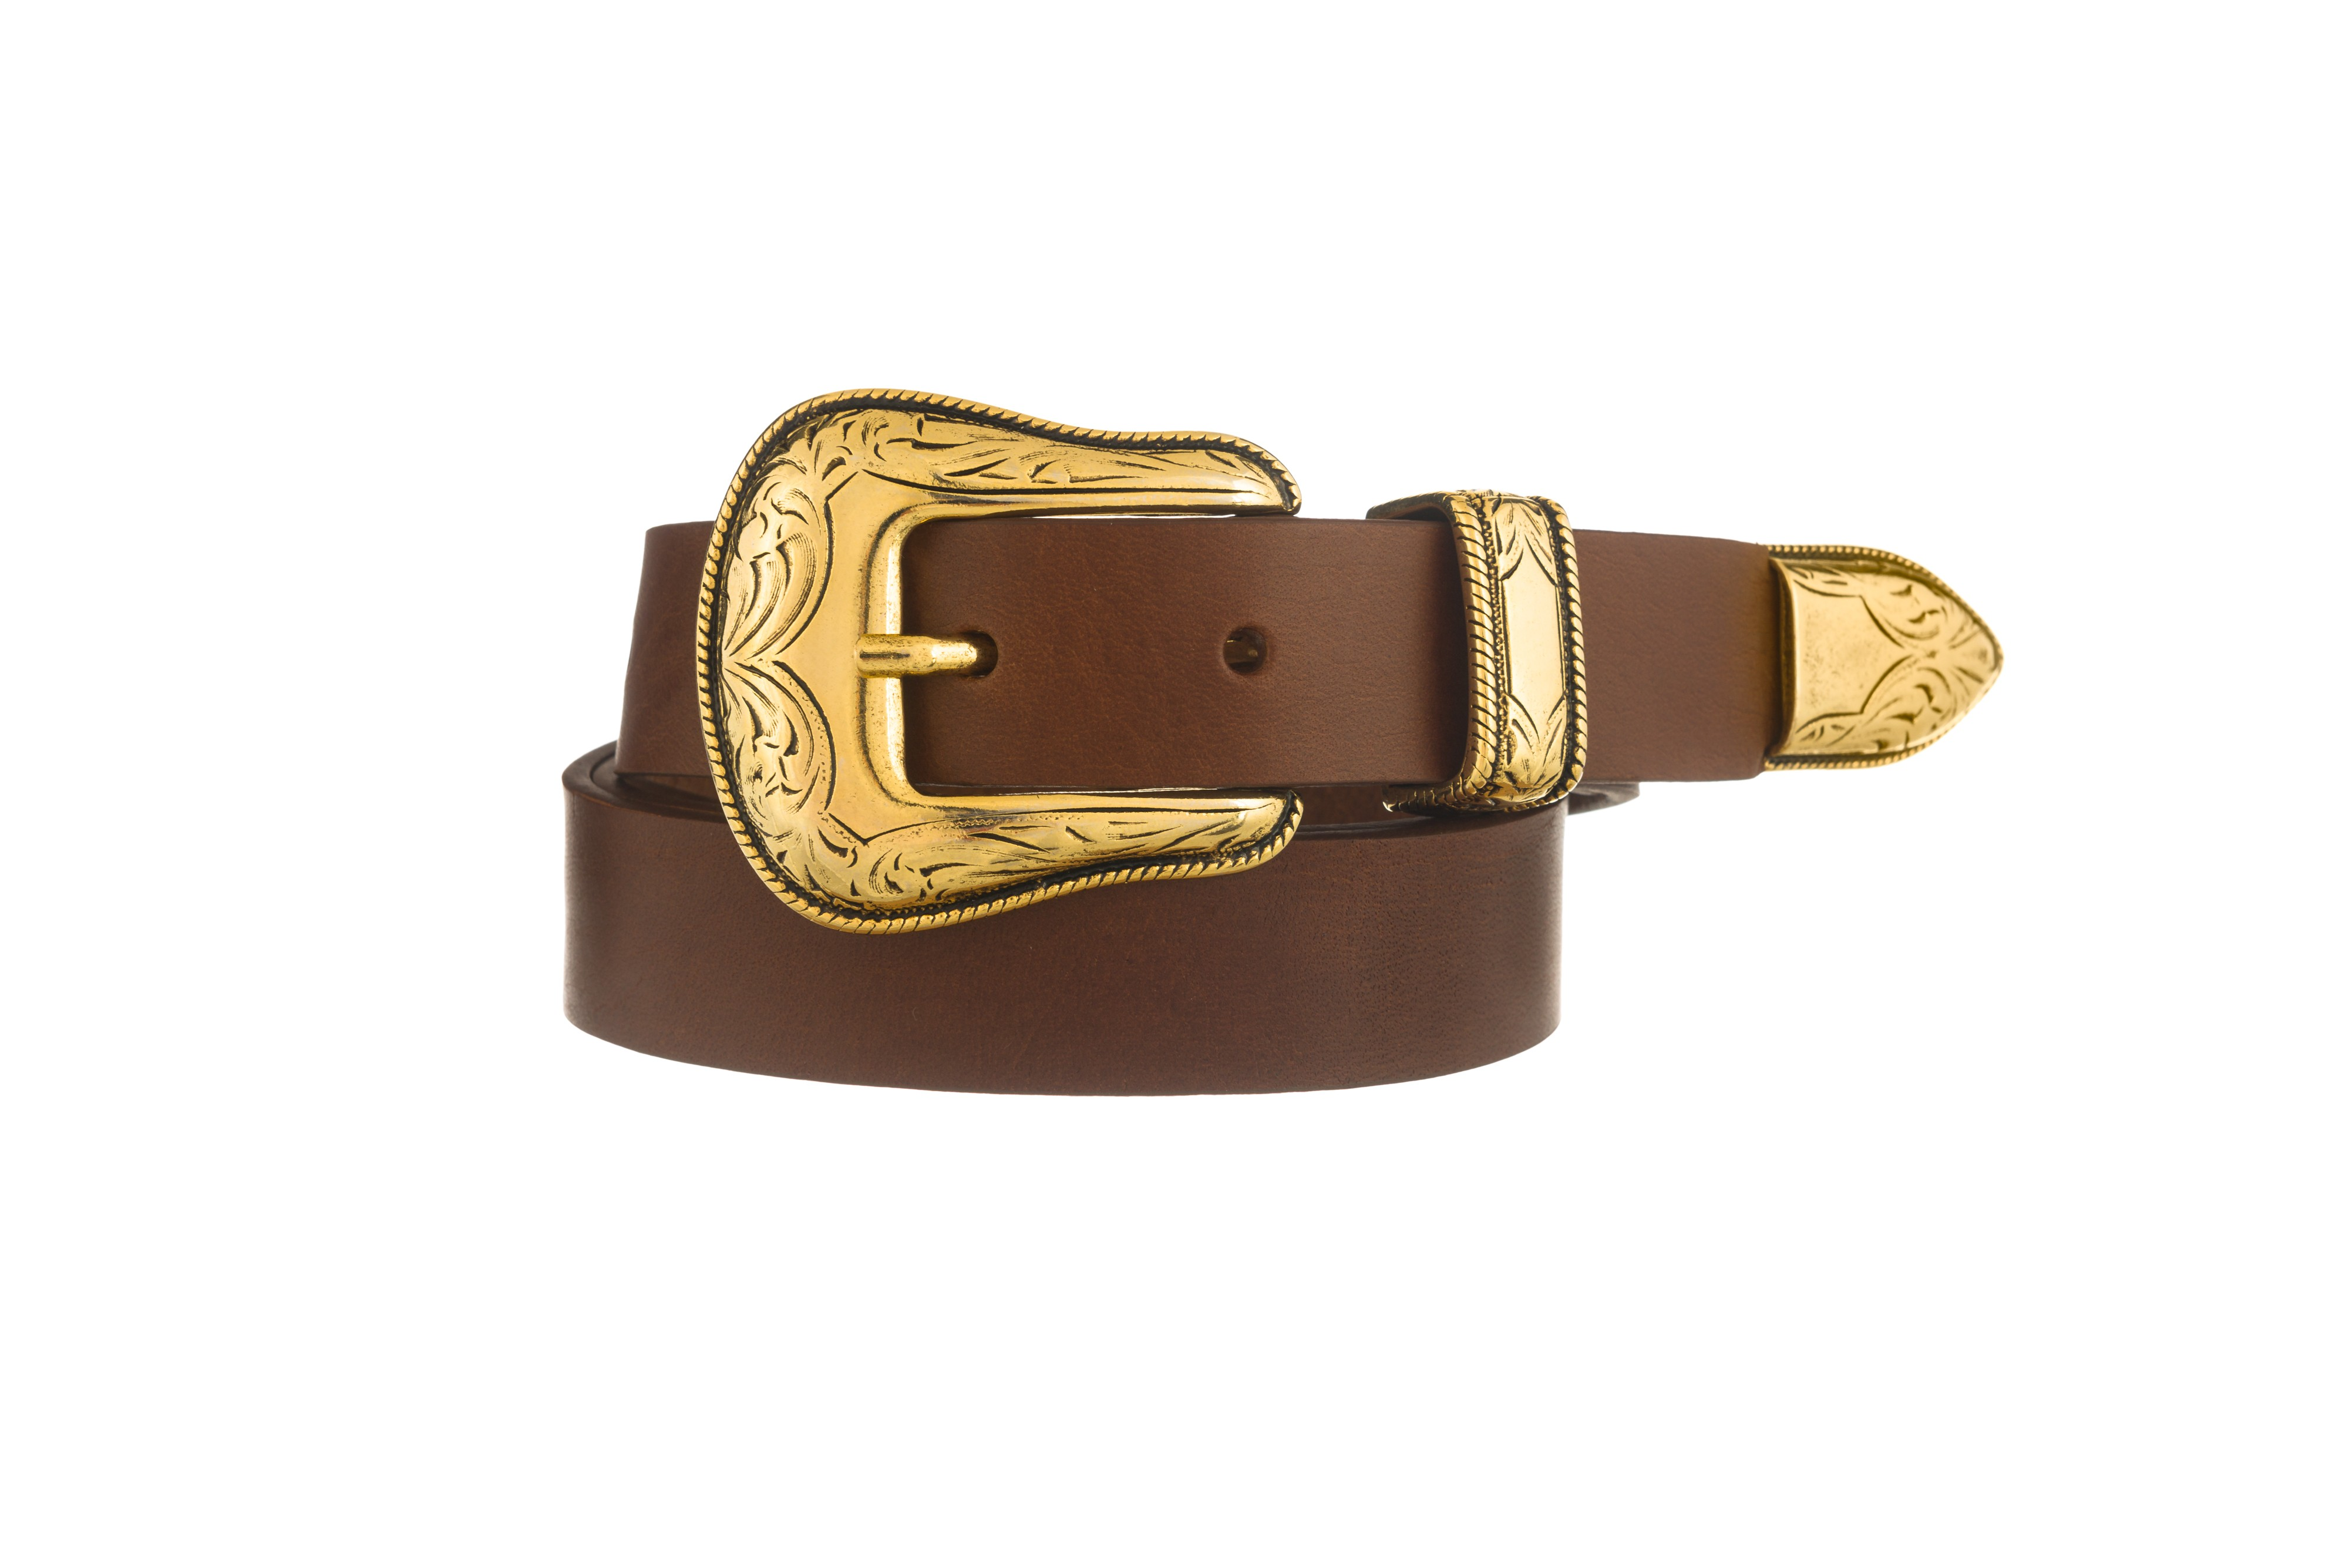 CLAUDIA WESTERN GOLD BUCKLE BROWN SKINNY JEANS BELT